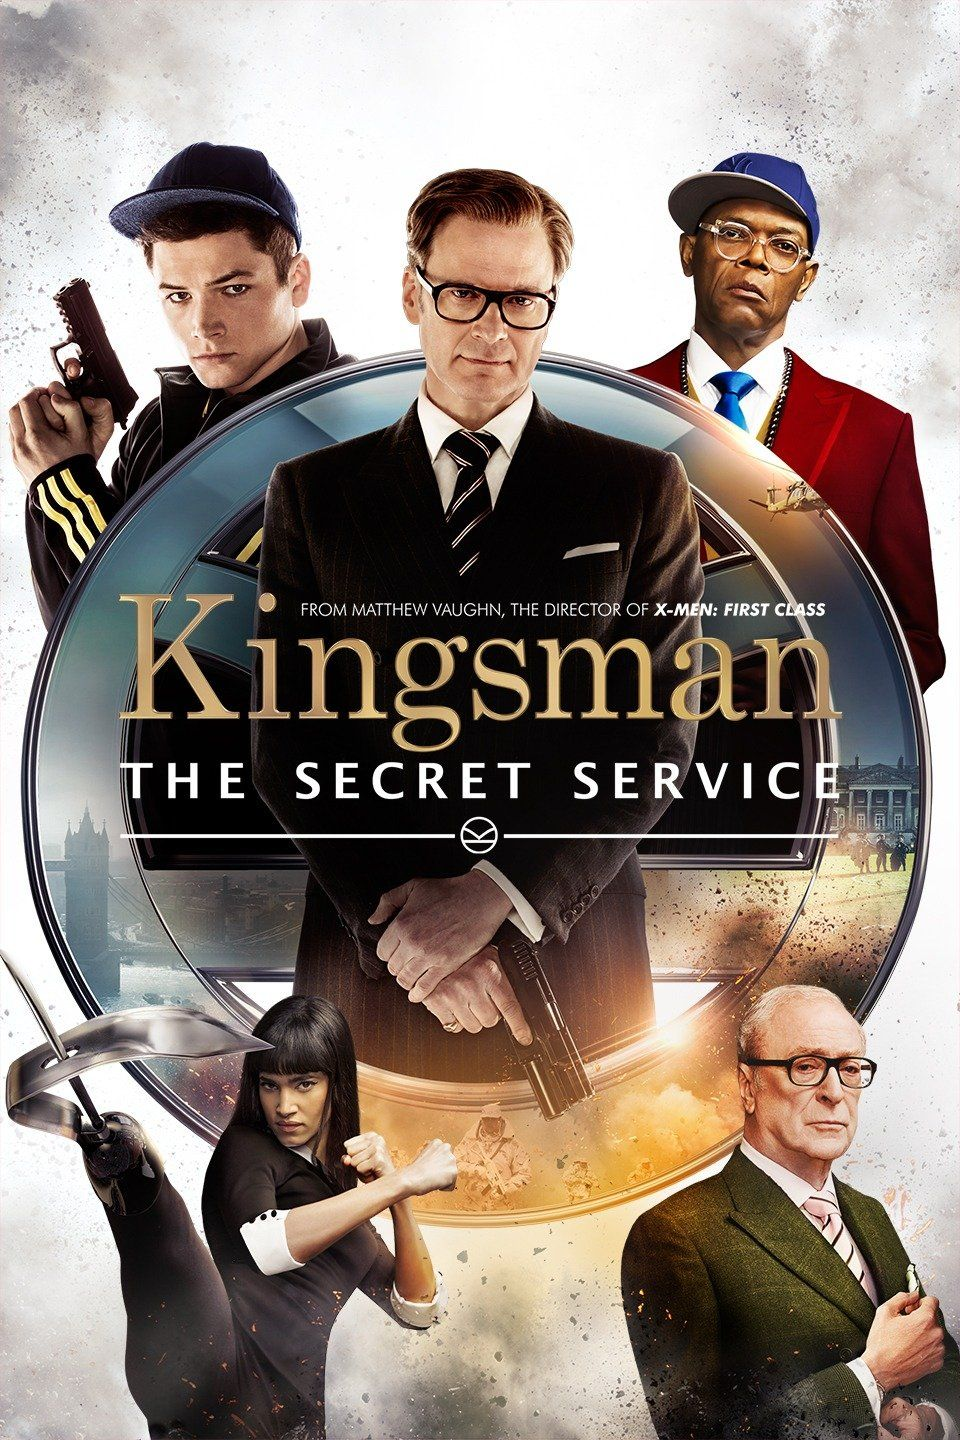 Stream all Kingsman movies on CouchPotato